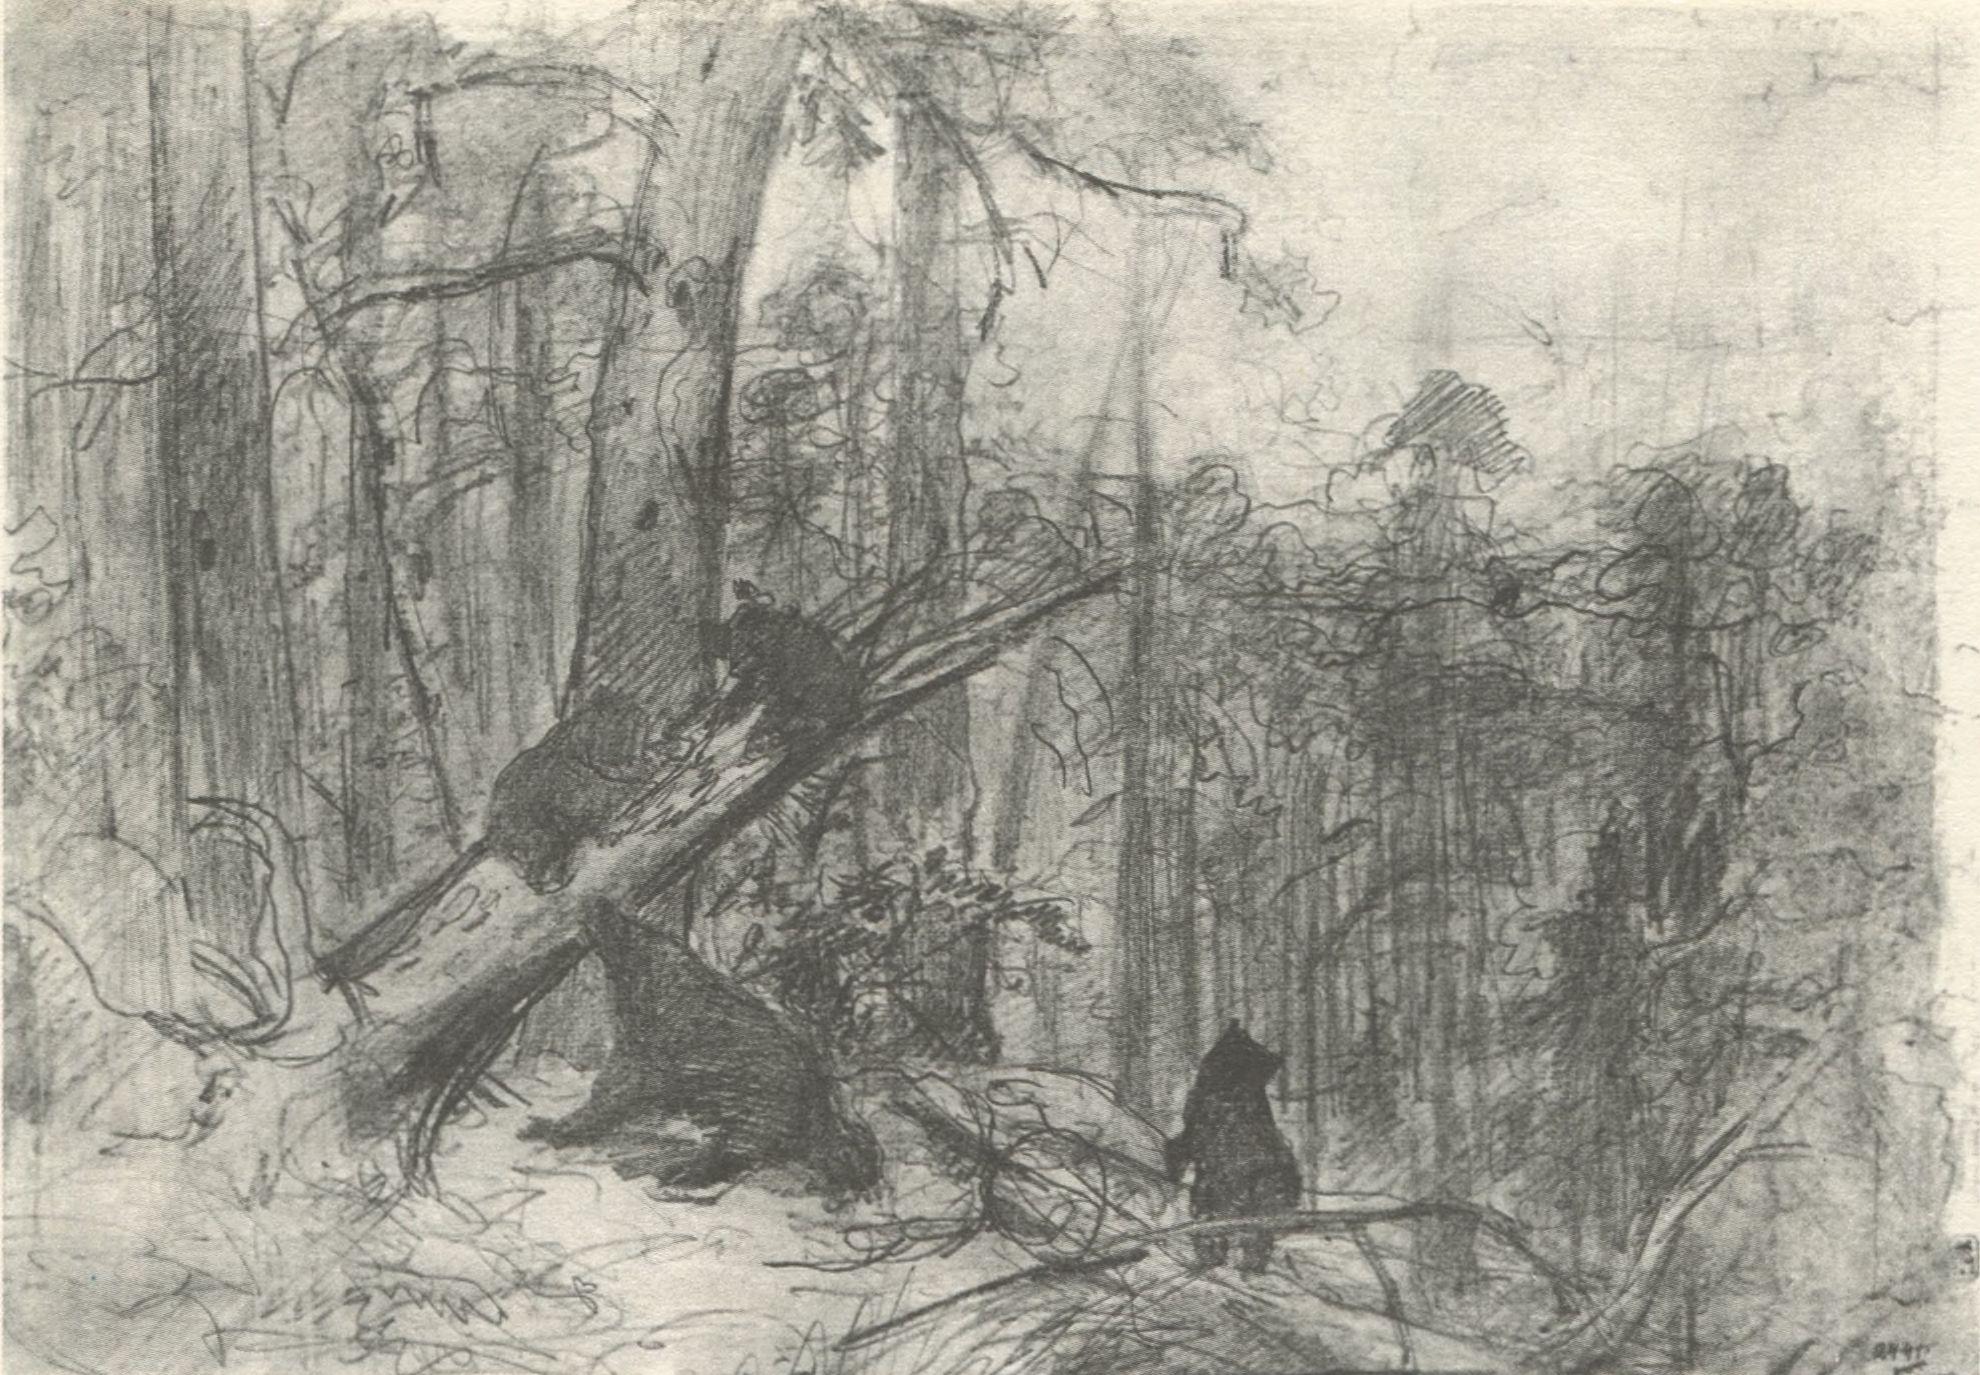 И.И. Шишкин. Утро в сосновом лесу. Эскиз картины 1889 г. (Ivan Shishkin. Morning in a Pine Forest. Sketch for the similarly entitled painting of 1889)